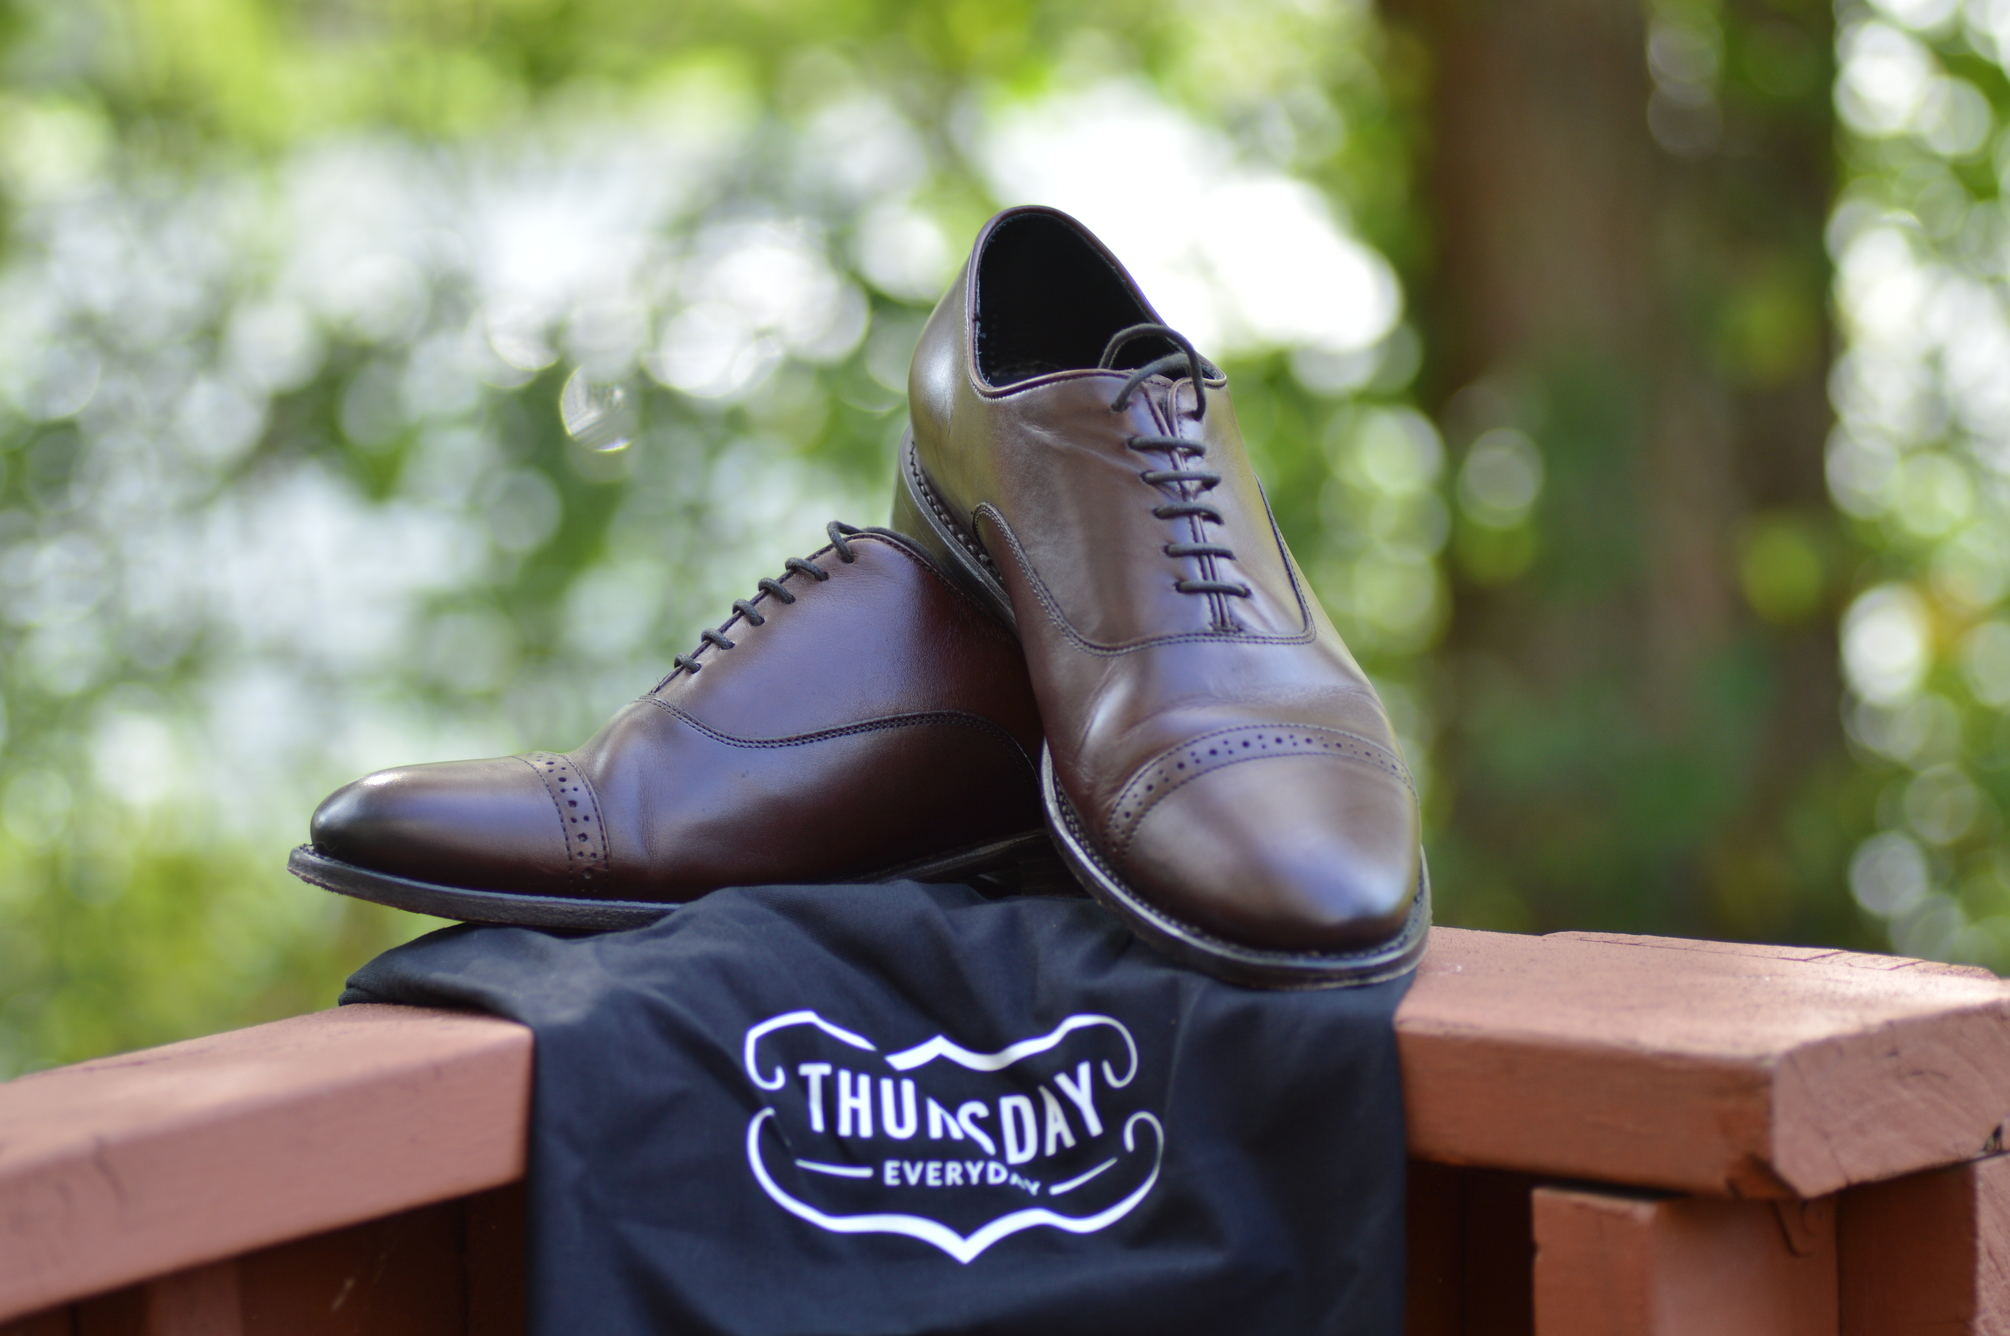 Thursday Broadway Brogued Dress Shoes